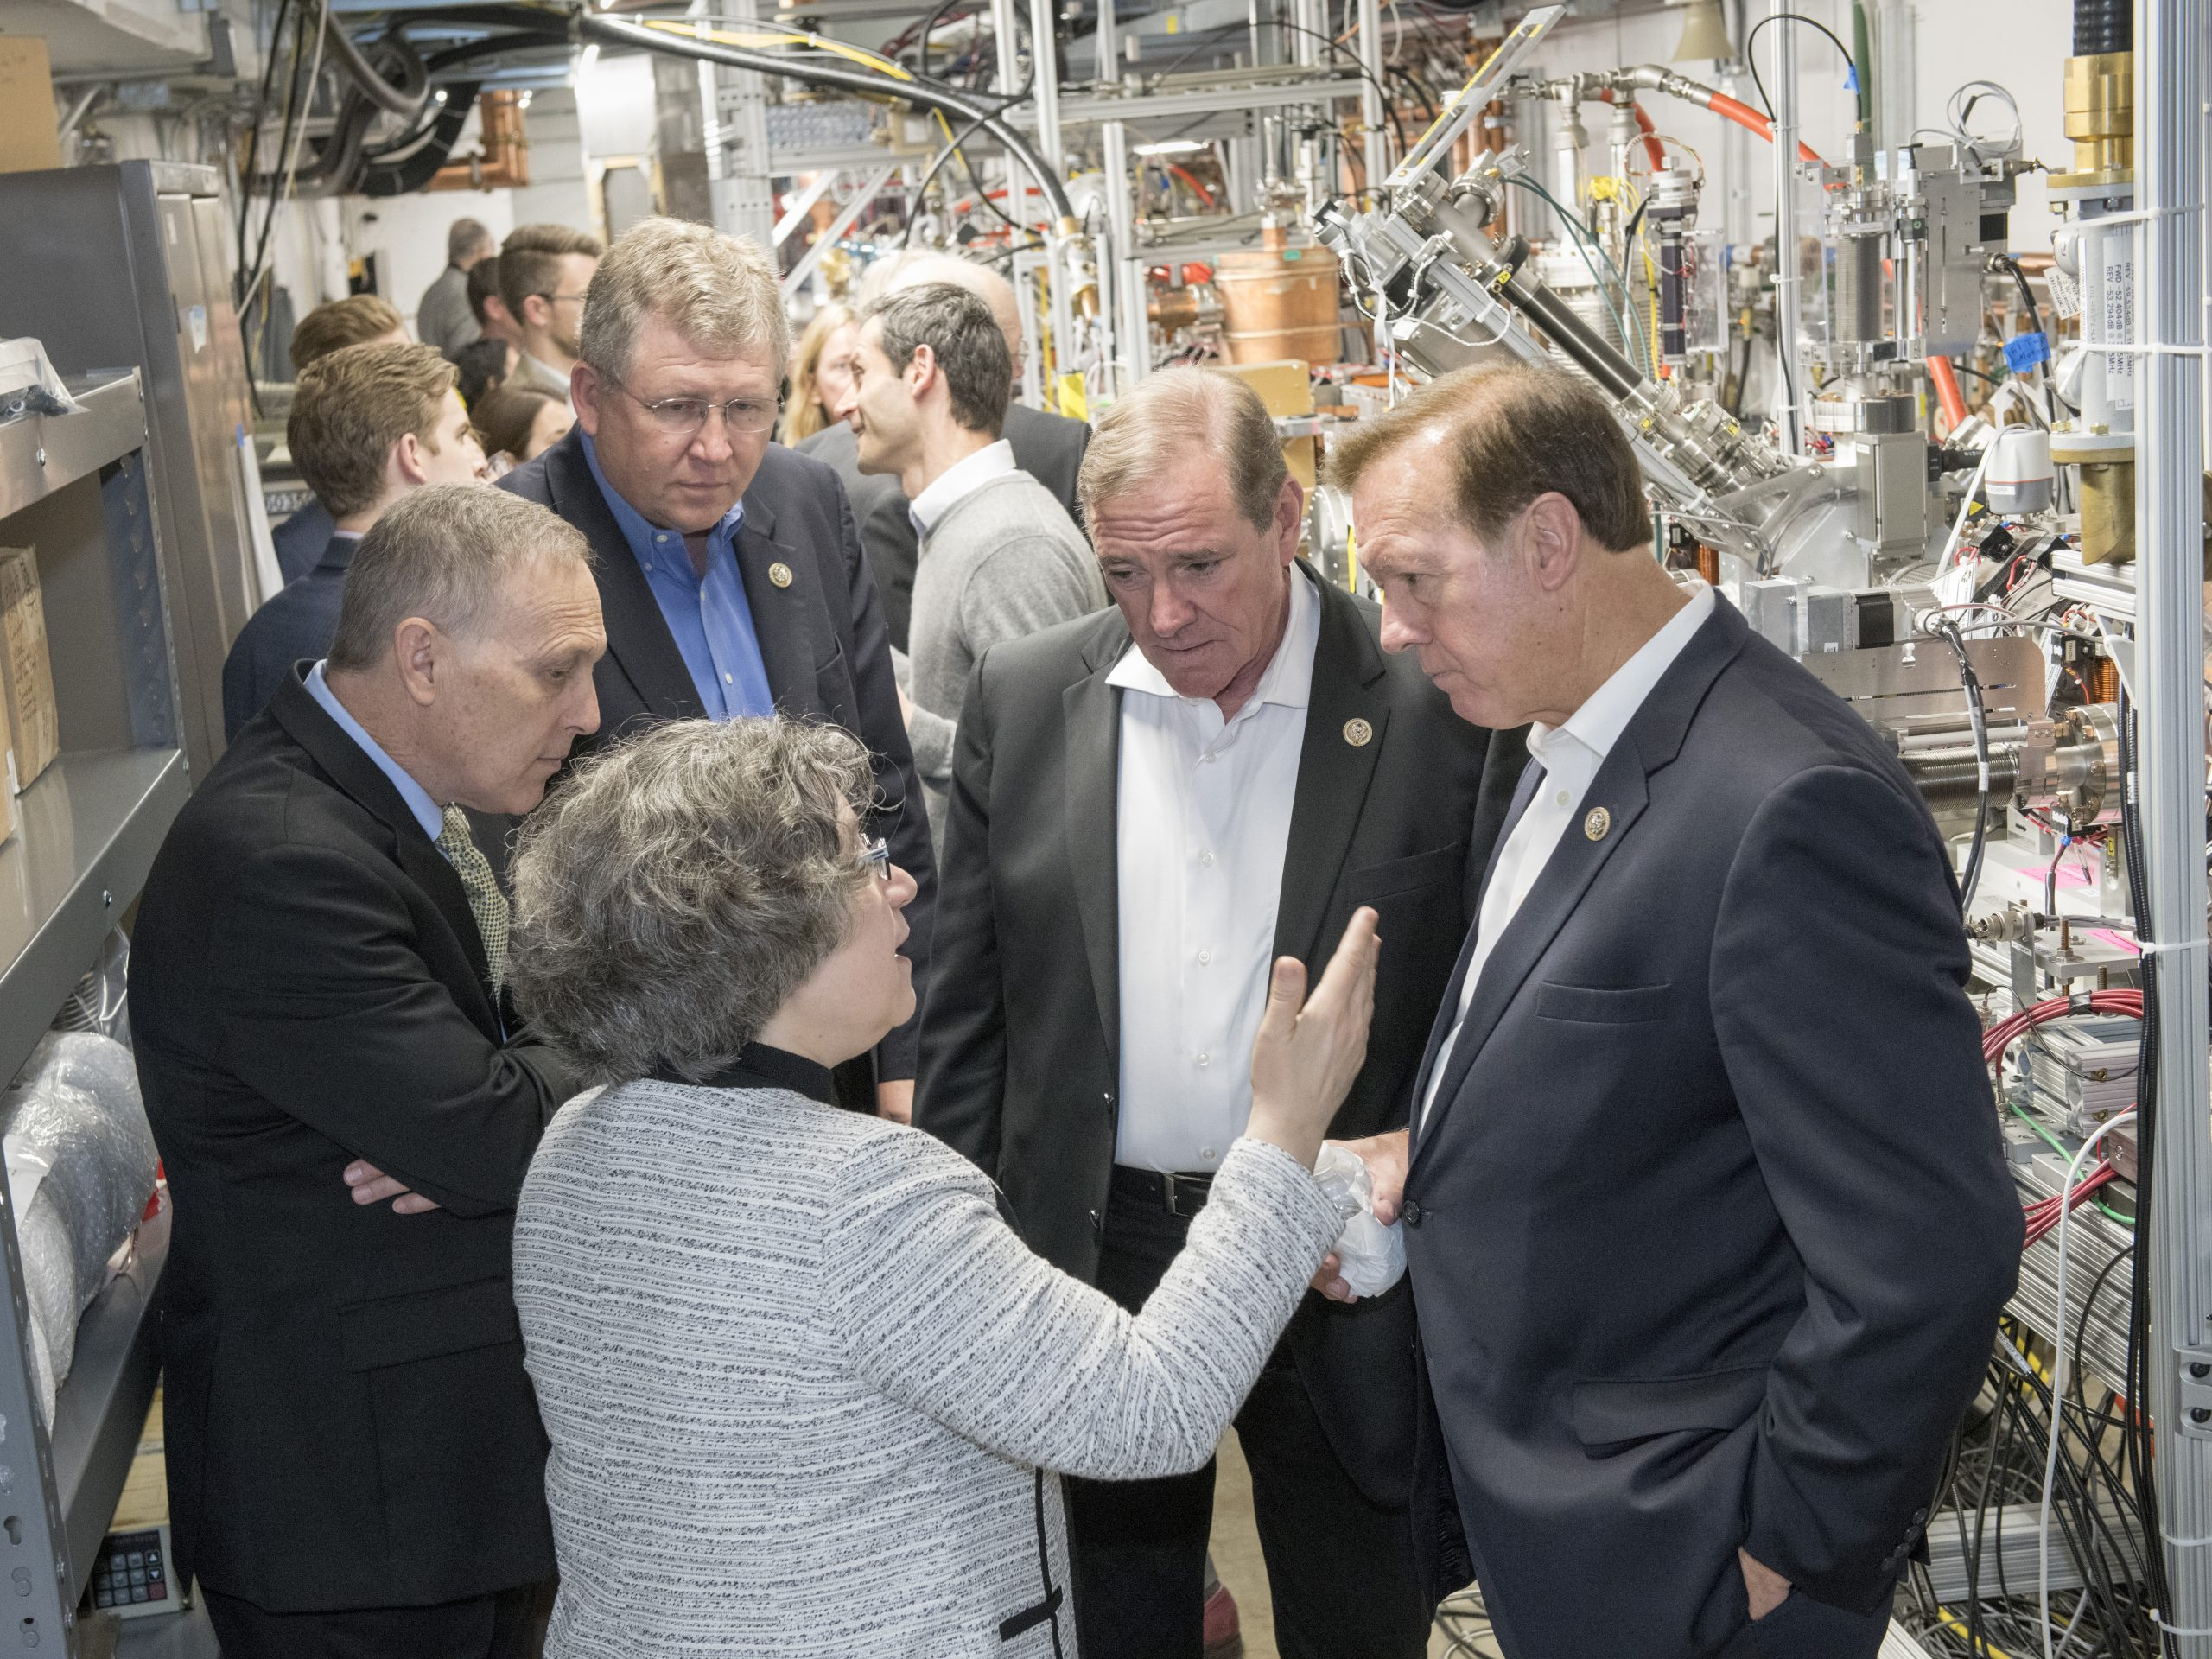 Congressmen (from left) Andy Biggs, Frank Lucas, Neal Dunn and Randy Weber listened to Lia Merminga as she gave visitors a tour of Fermilab's work on testing equipment for a new superconducting particle accelerator. Photo: Reidar Hahn